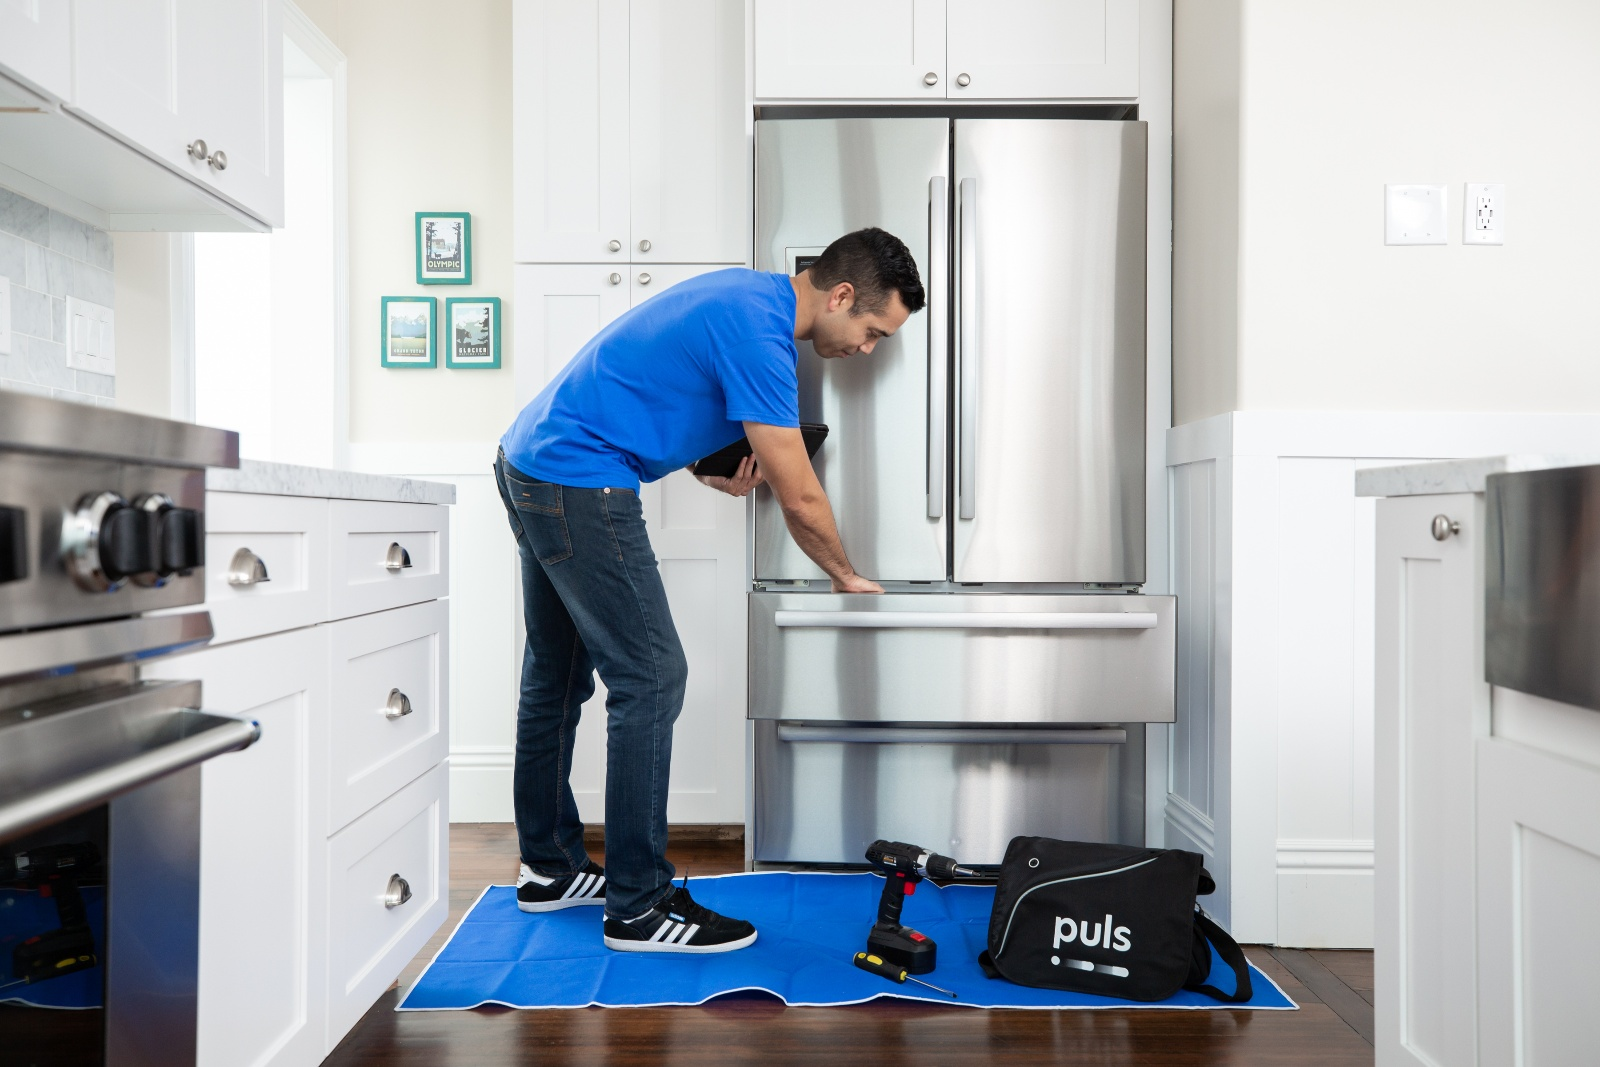 fridge repair technician Puls